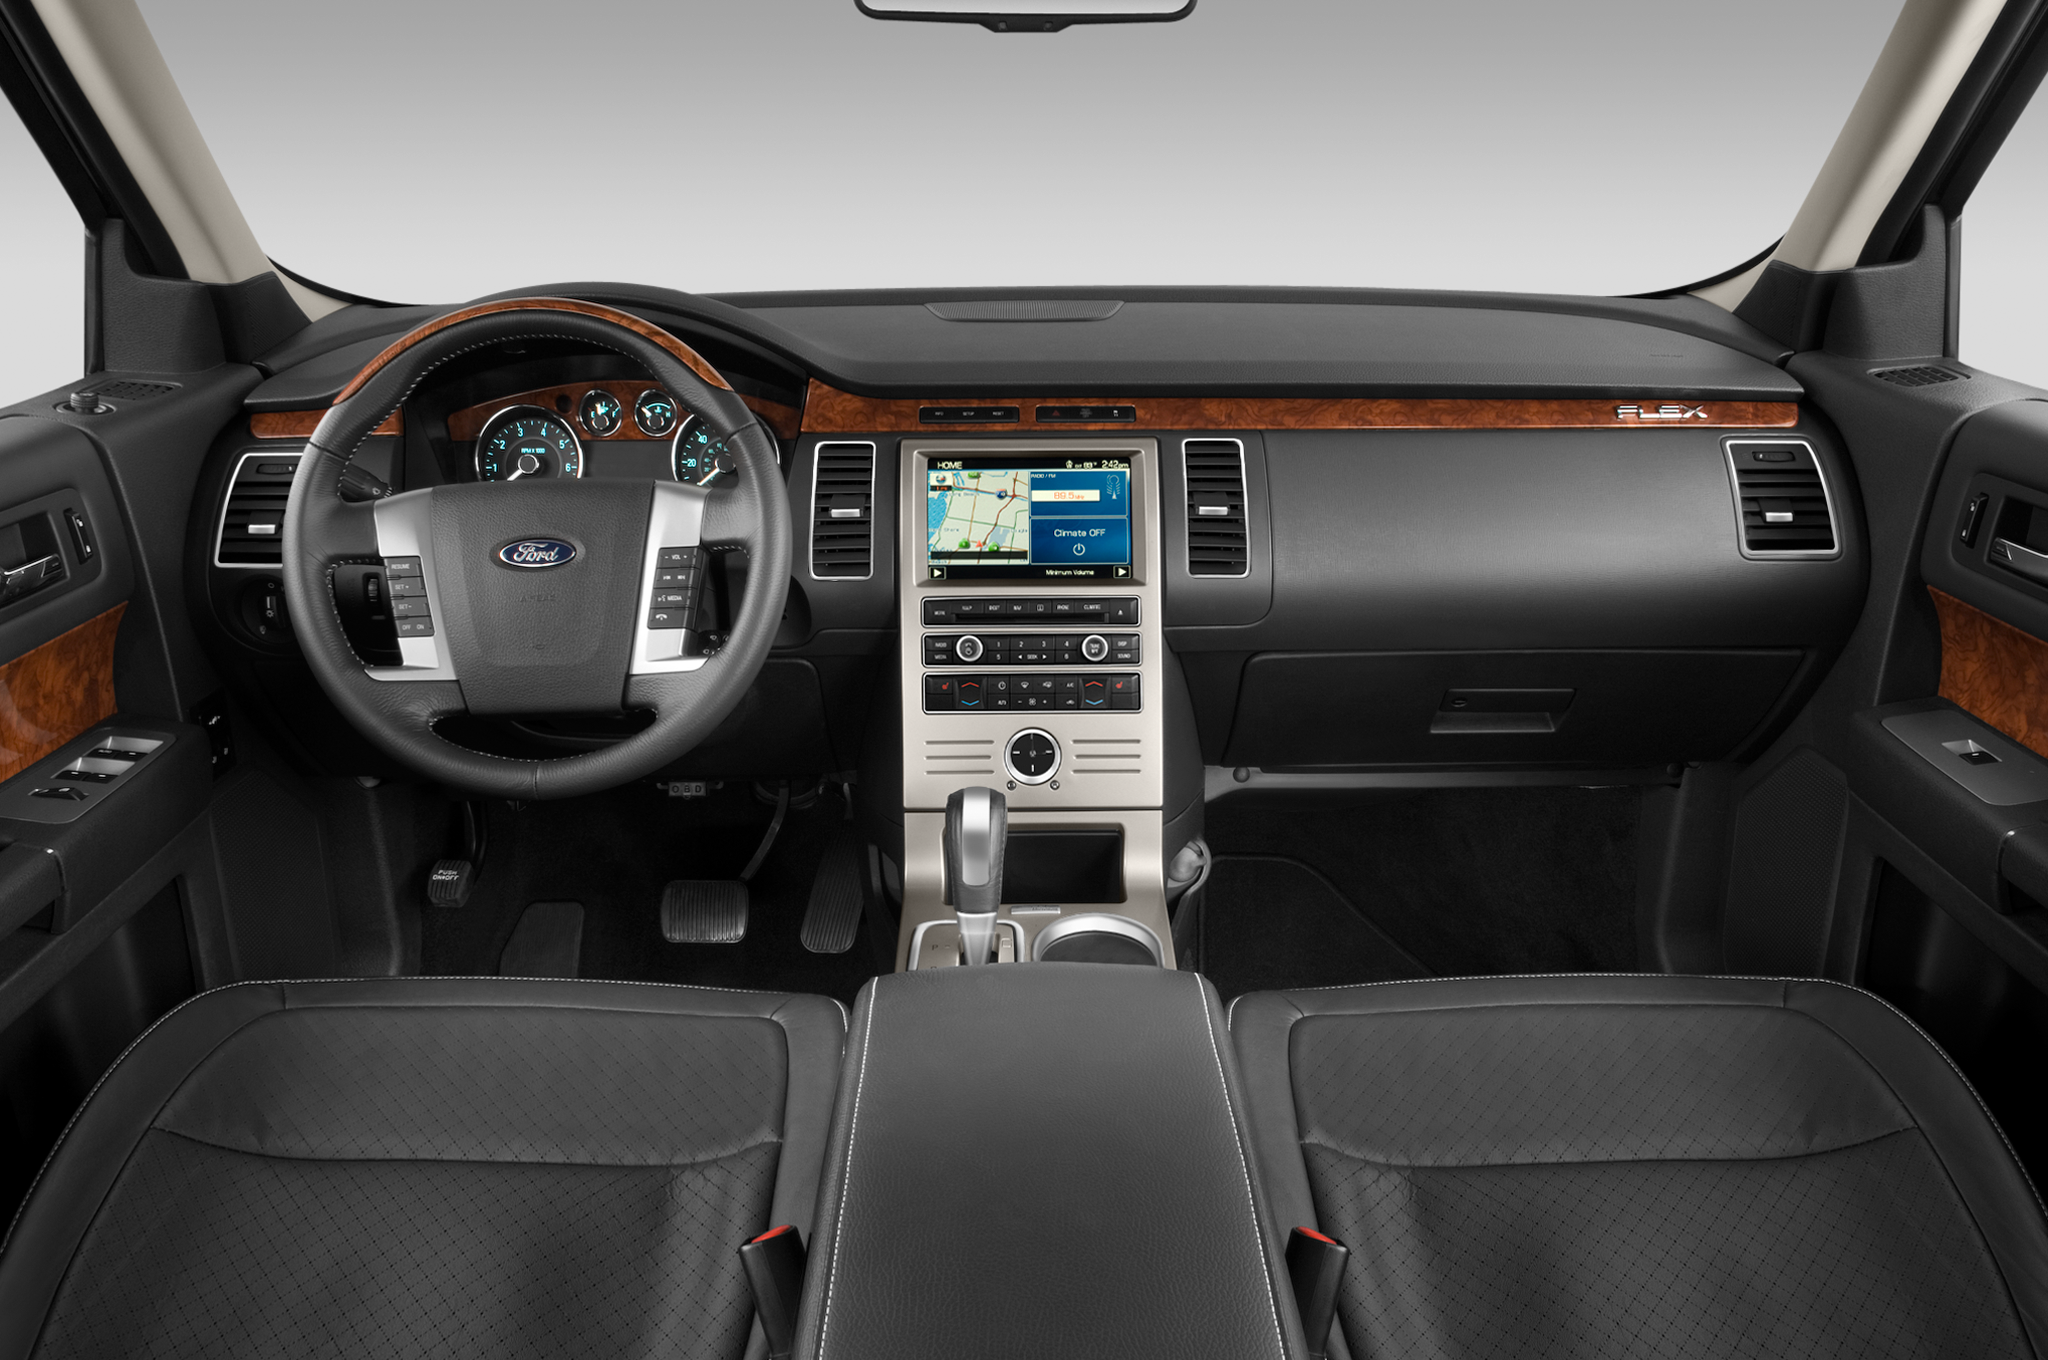 2010 ford flex ecoboost ford crossover suv review. Black Bedroom Furniture Sets. Home Design Ideas